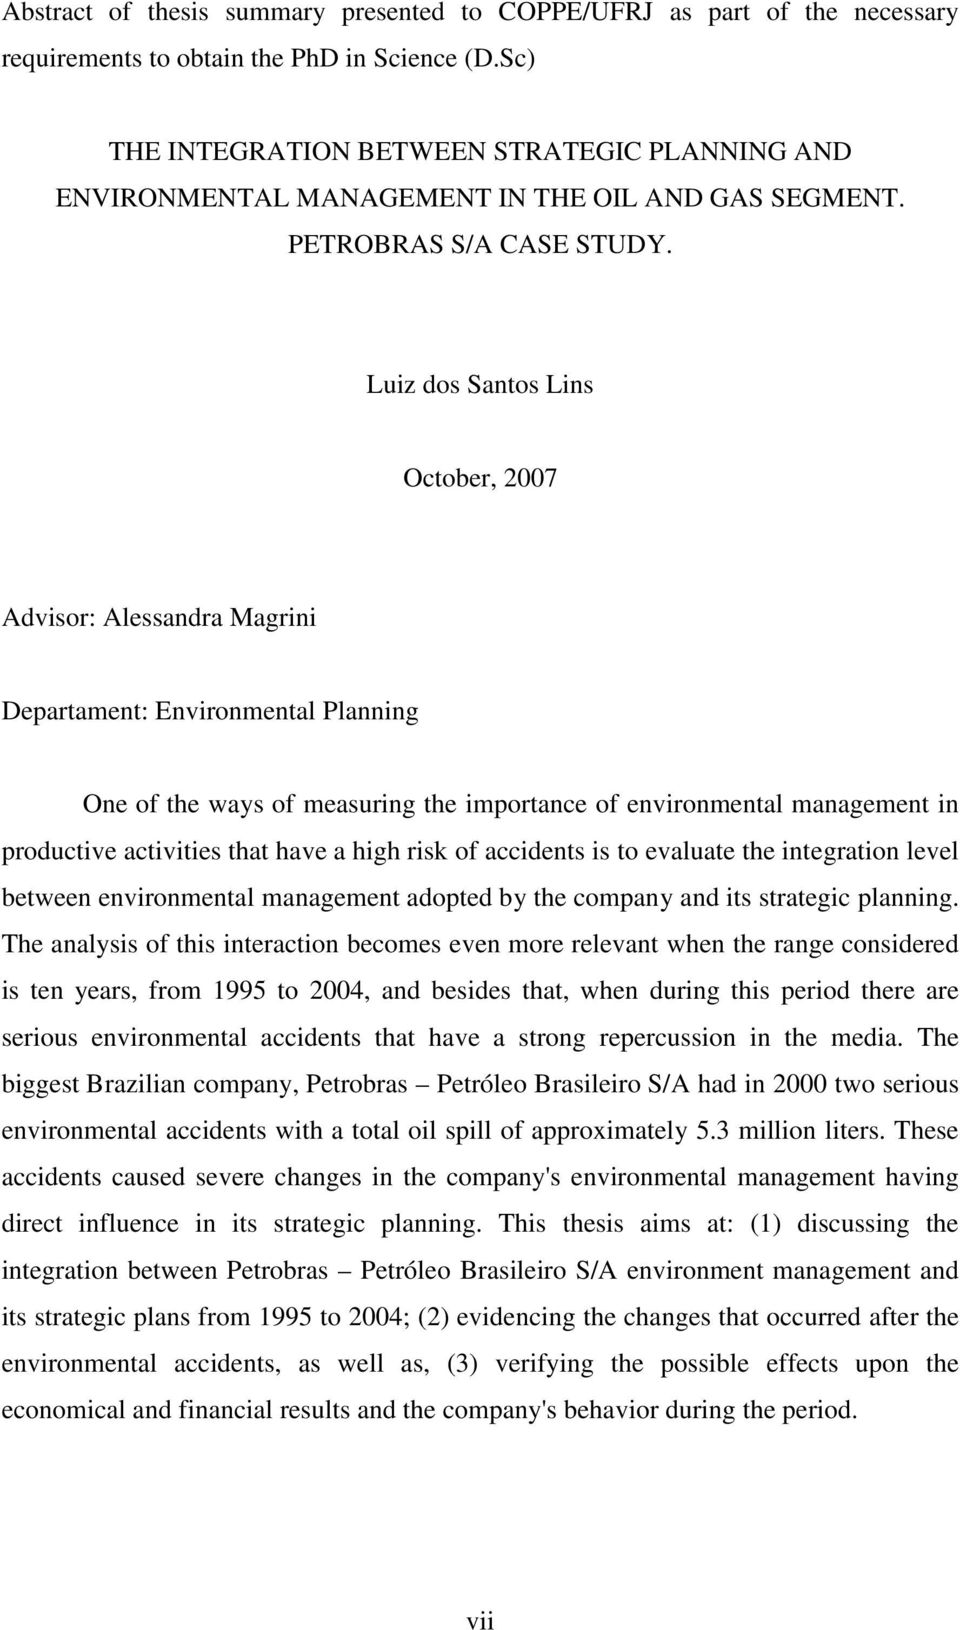 Luiz dos Santos Lins October, 2007 Advisor: Alessandra Magrini Departament: Environmental Planning One of the ways of measuring the importance of environmental management in productive activities